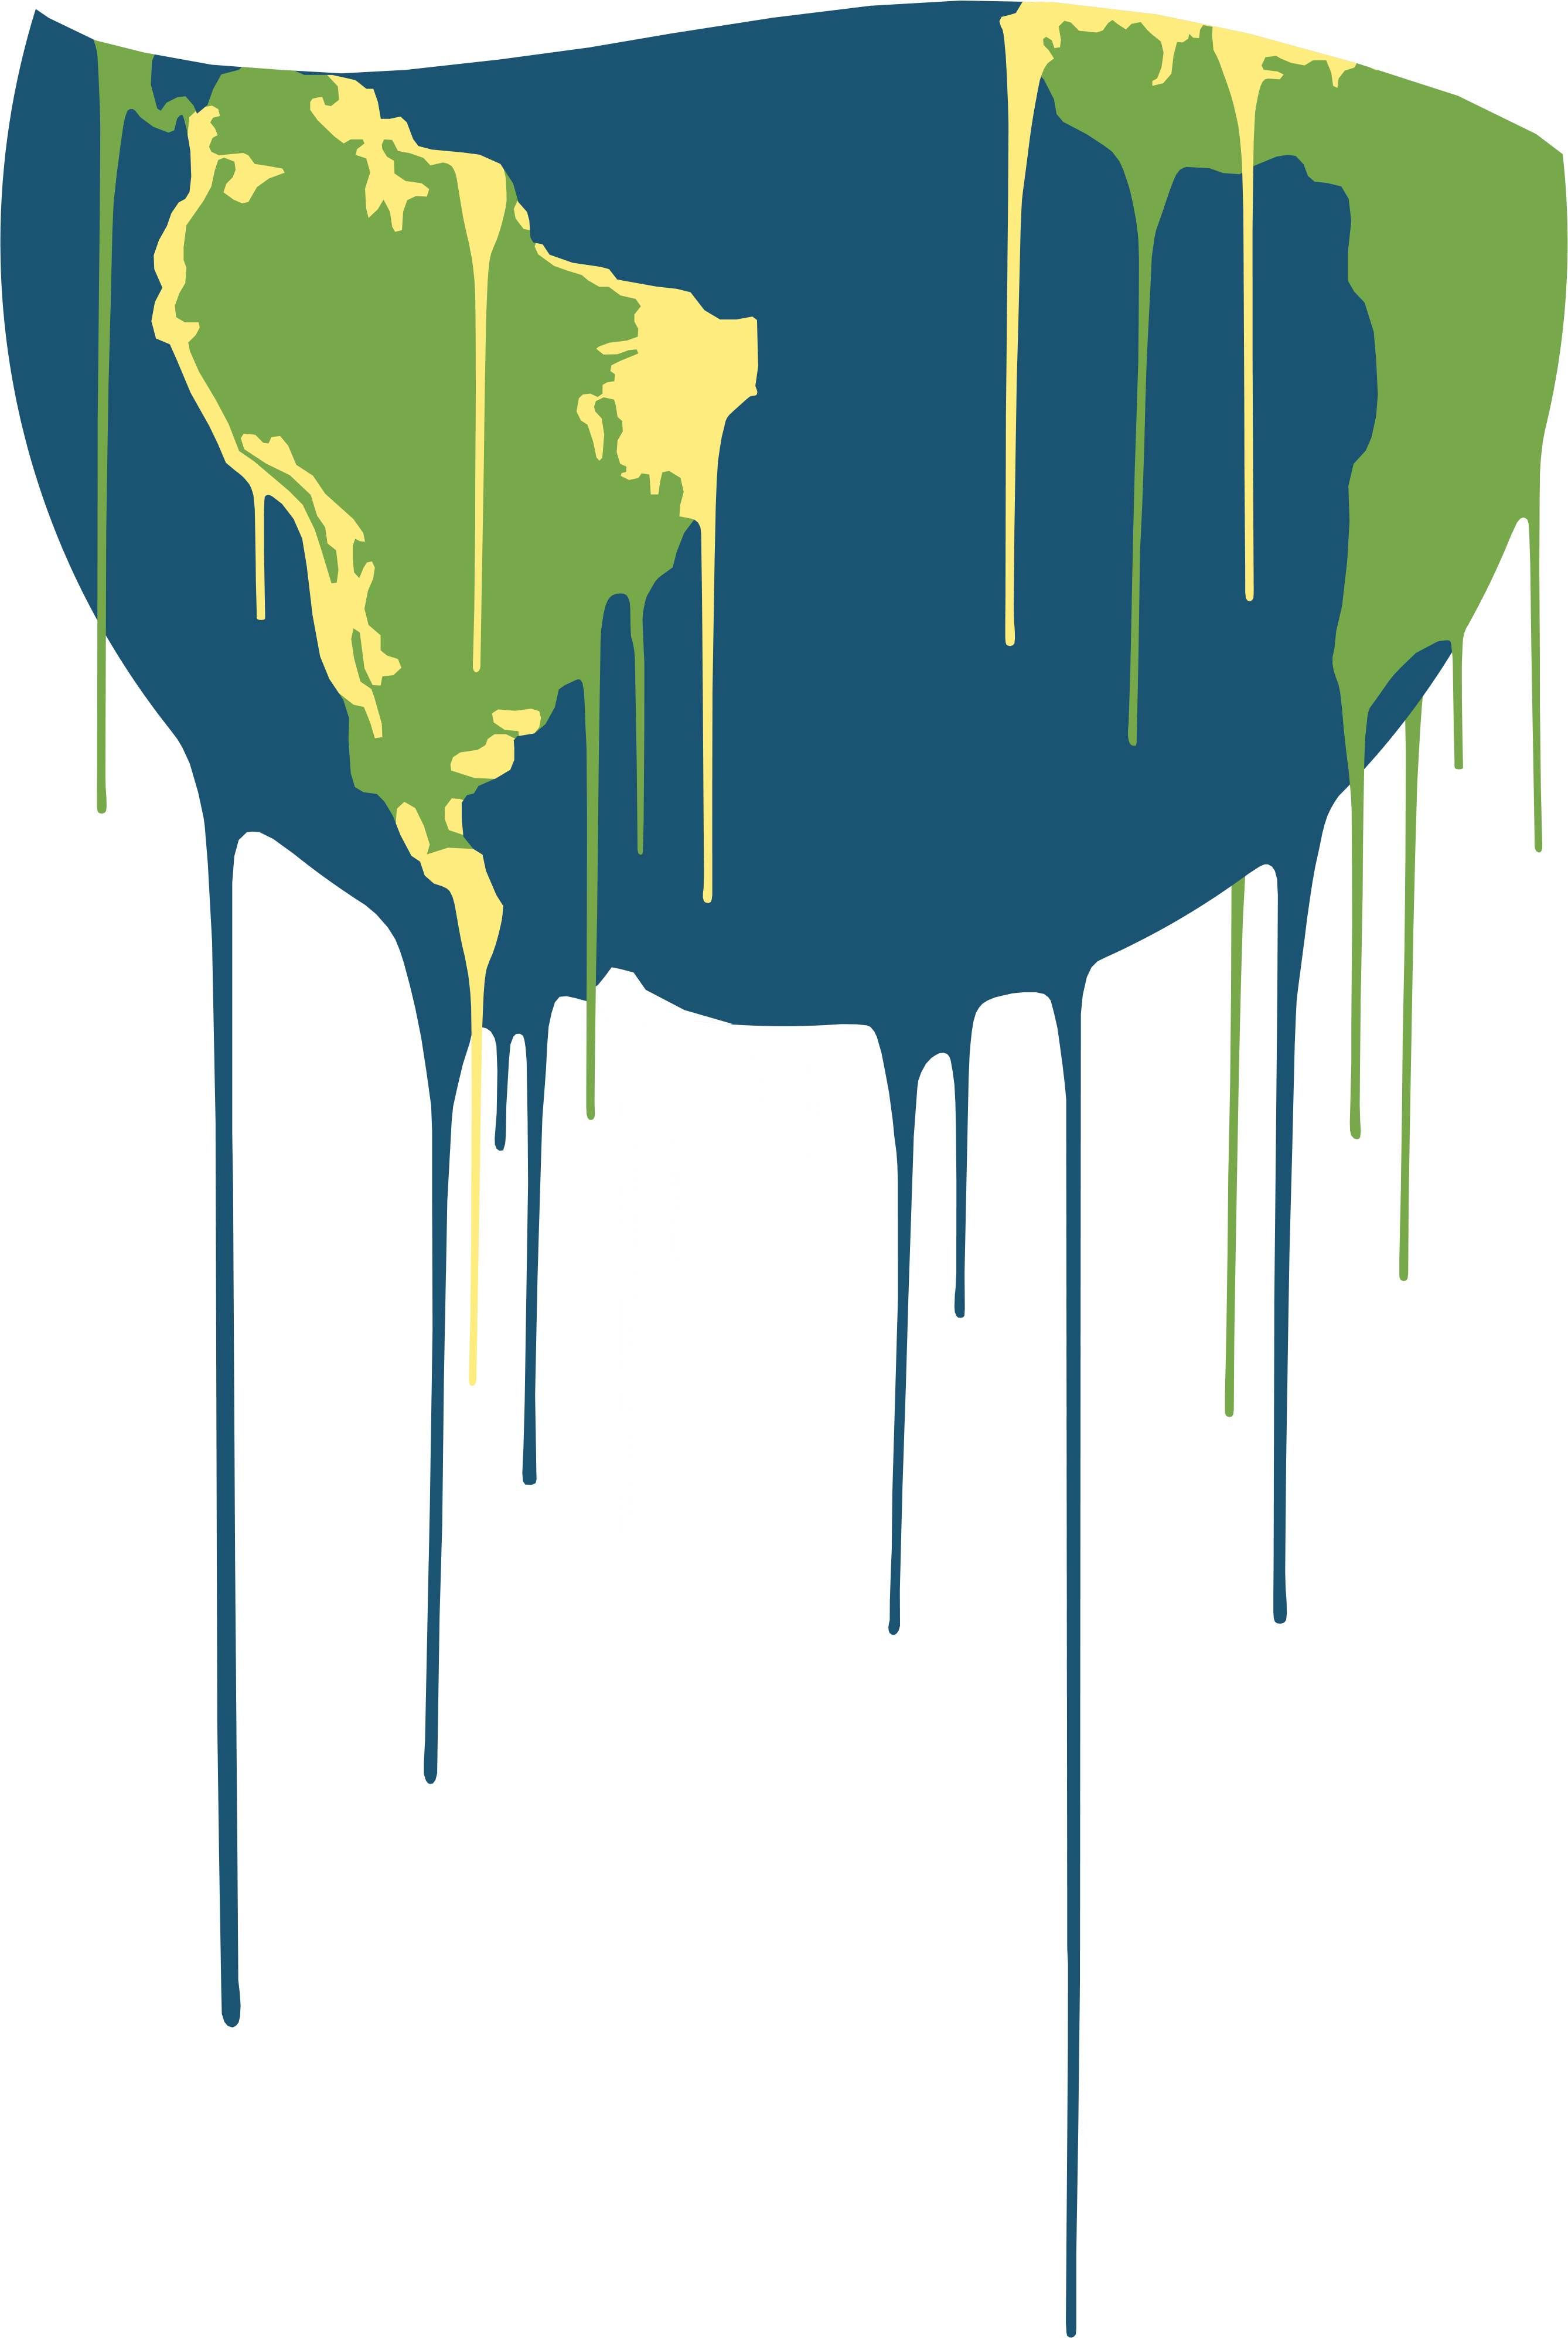 Melting Earth by Assassicactus Melting Earth by Assassicactus - Melting PNG